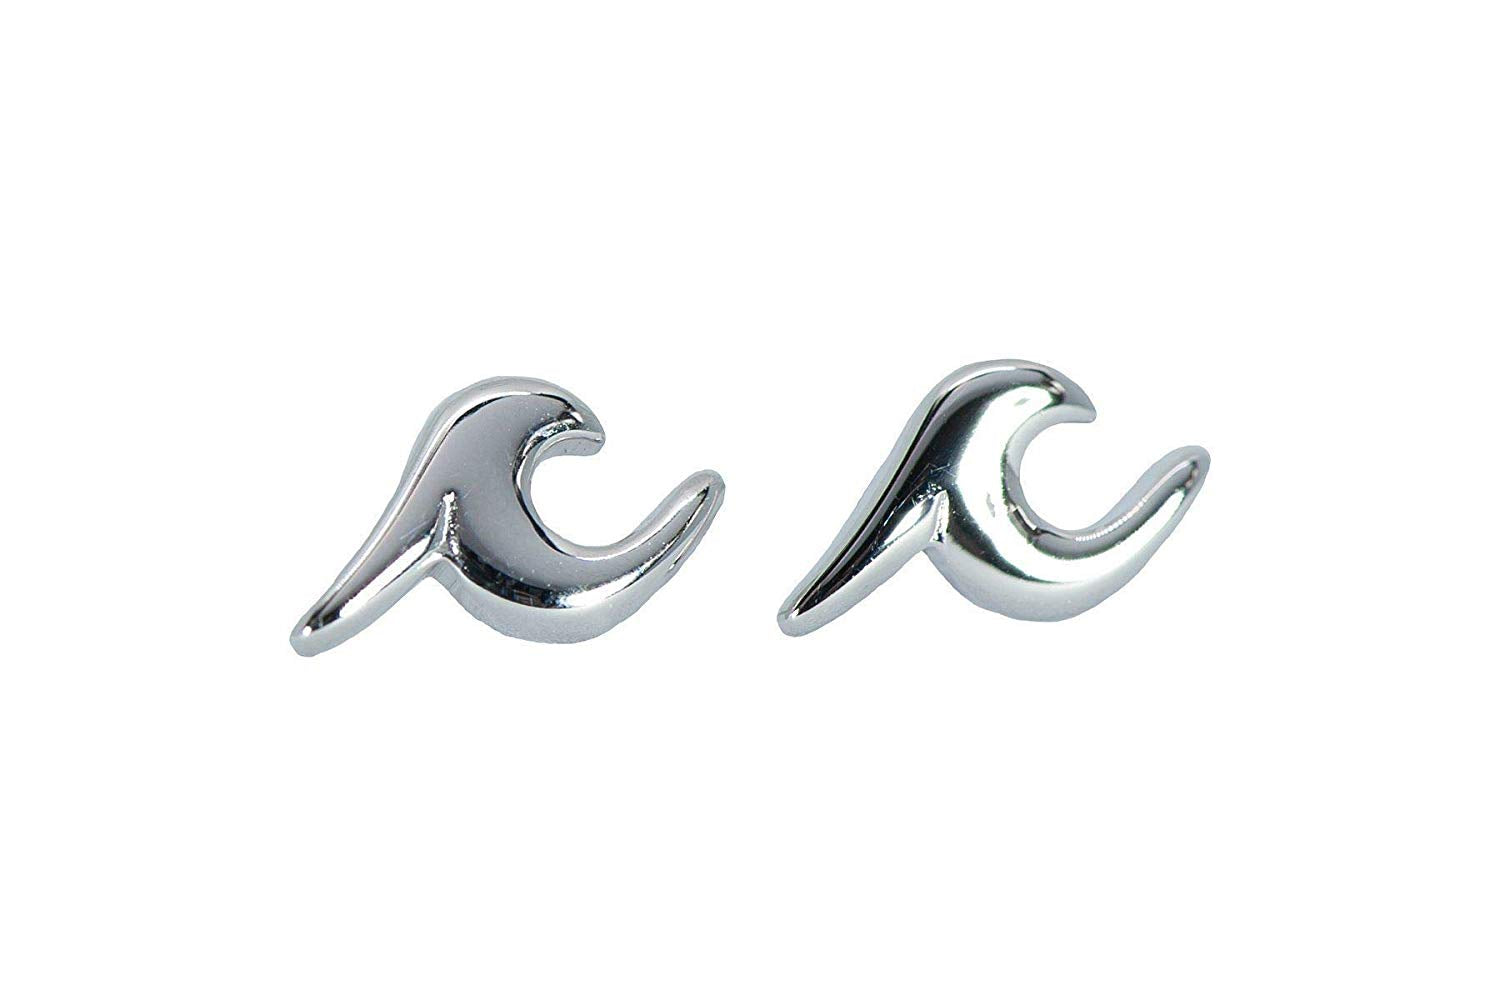 PURE VIDA WAVE STUD EARRINGS - PROVIDES ARTISAN JOBS